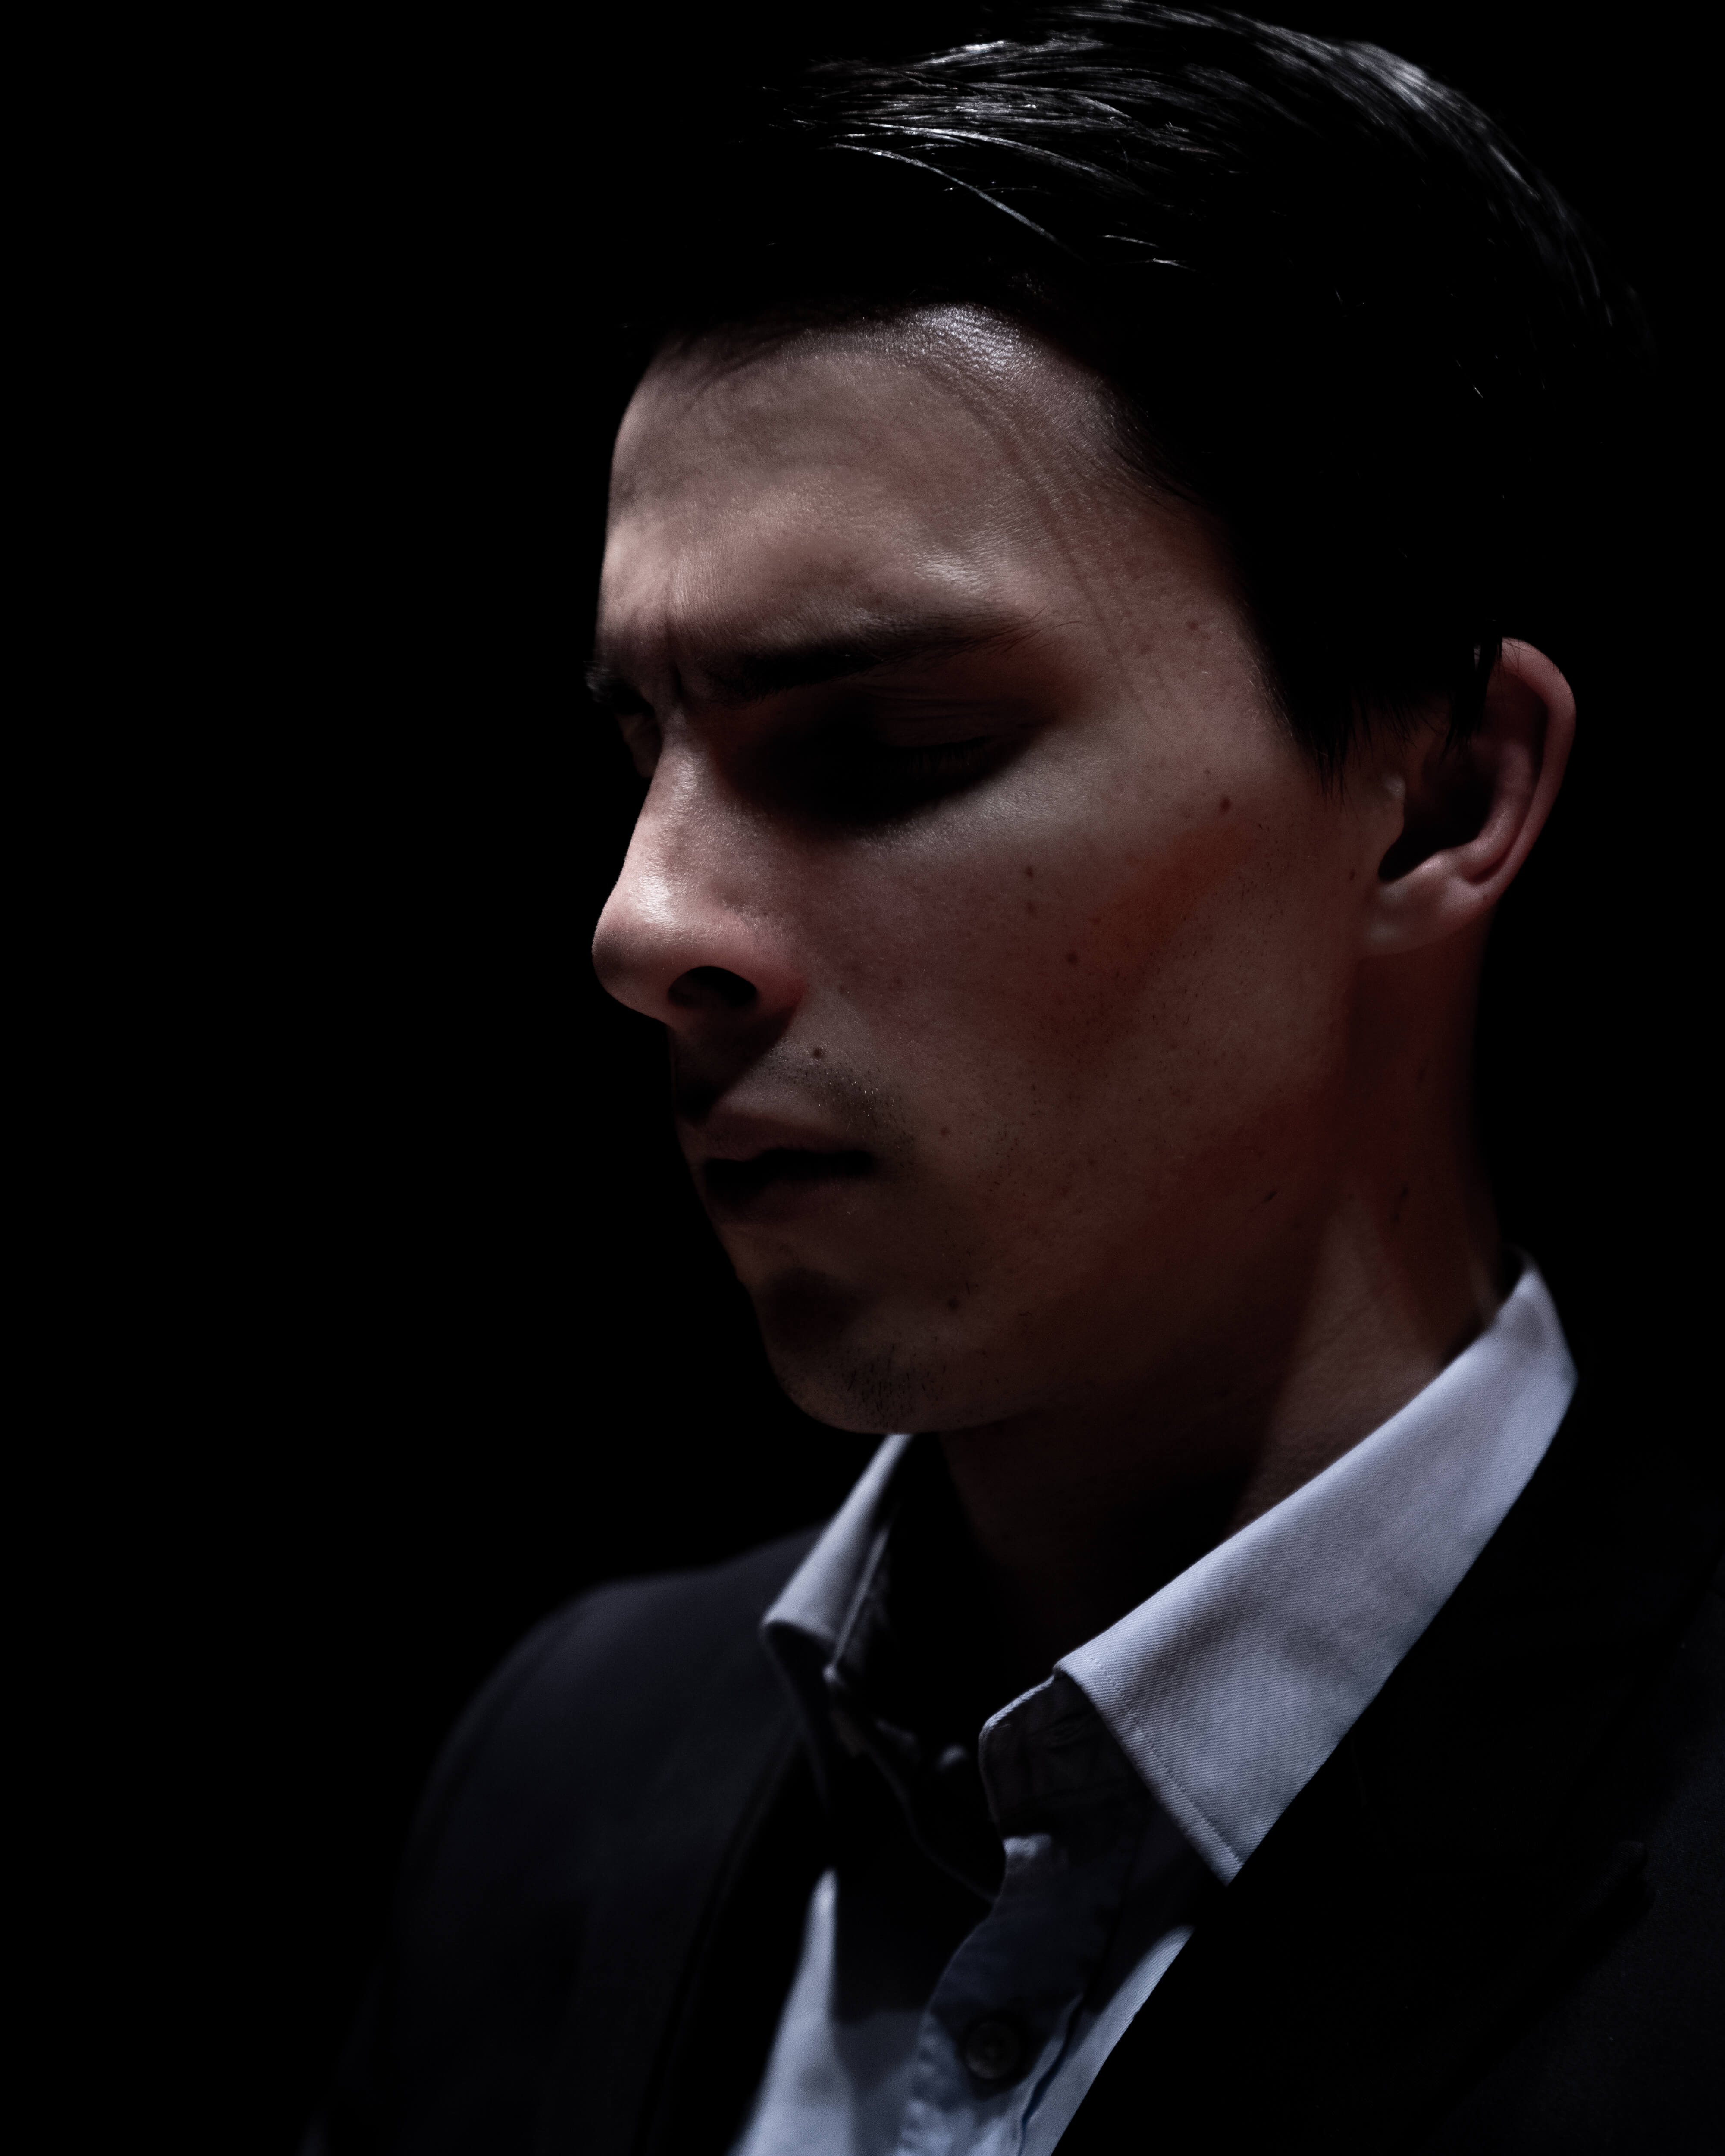 A portrait of a young man wearing a blue collared shirt an a black blazer in the dark.